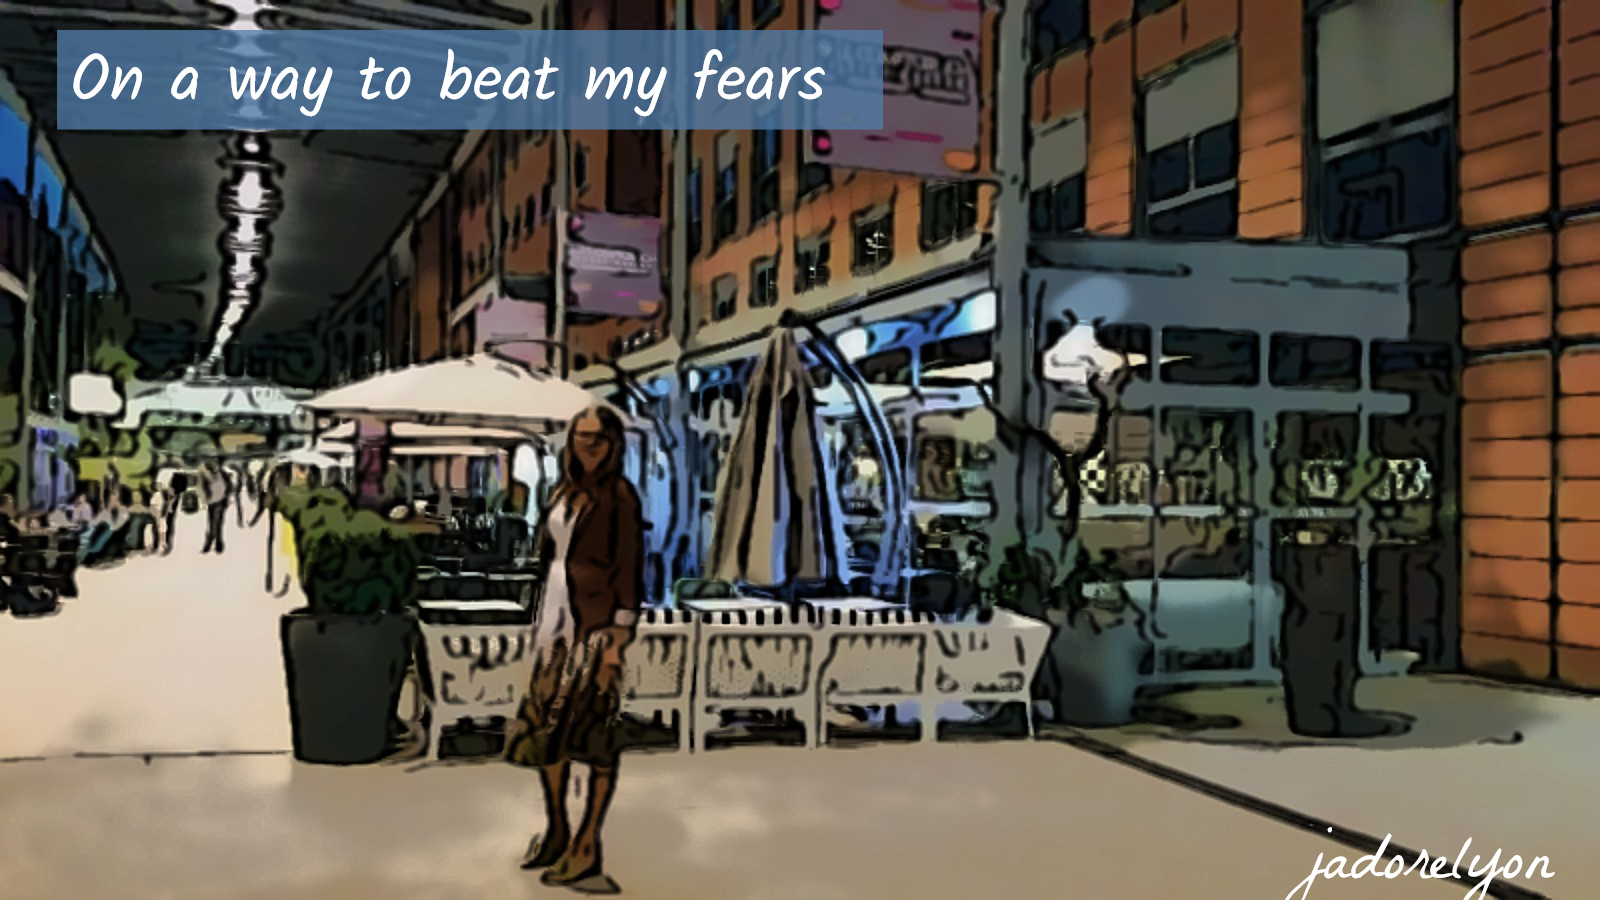 Beating my fears